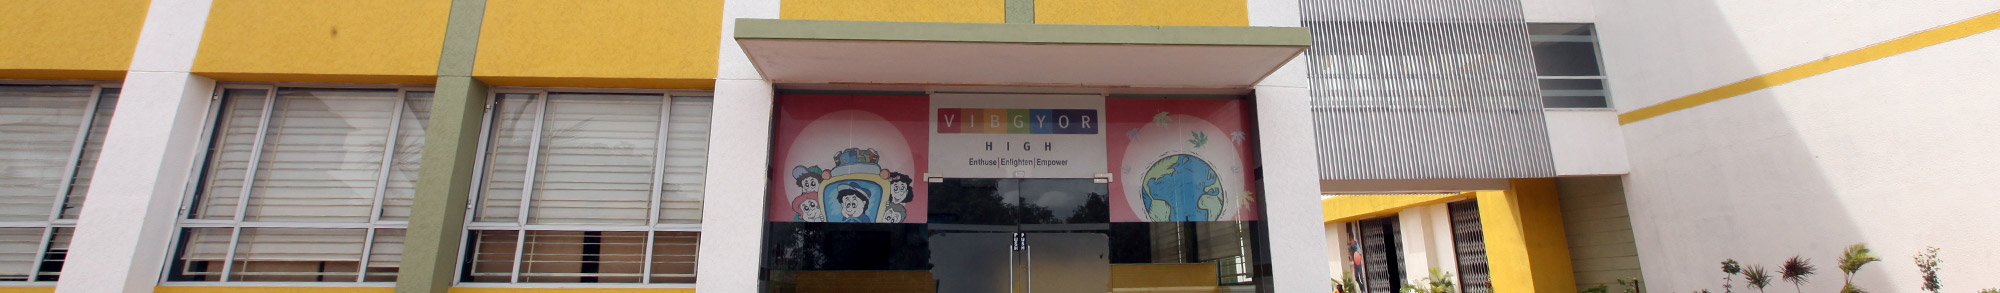 VIBGYOR High School in Bengaluru Horamavu